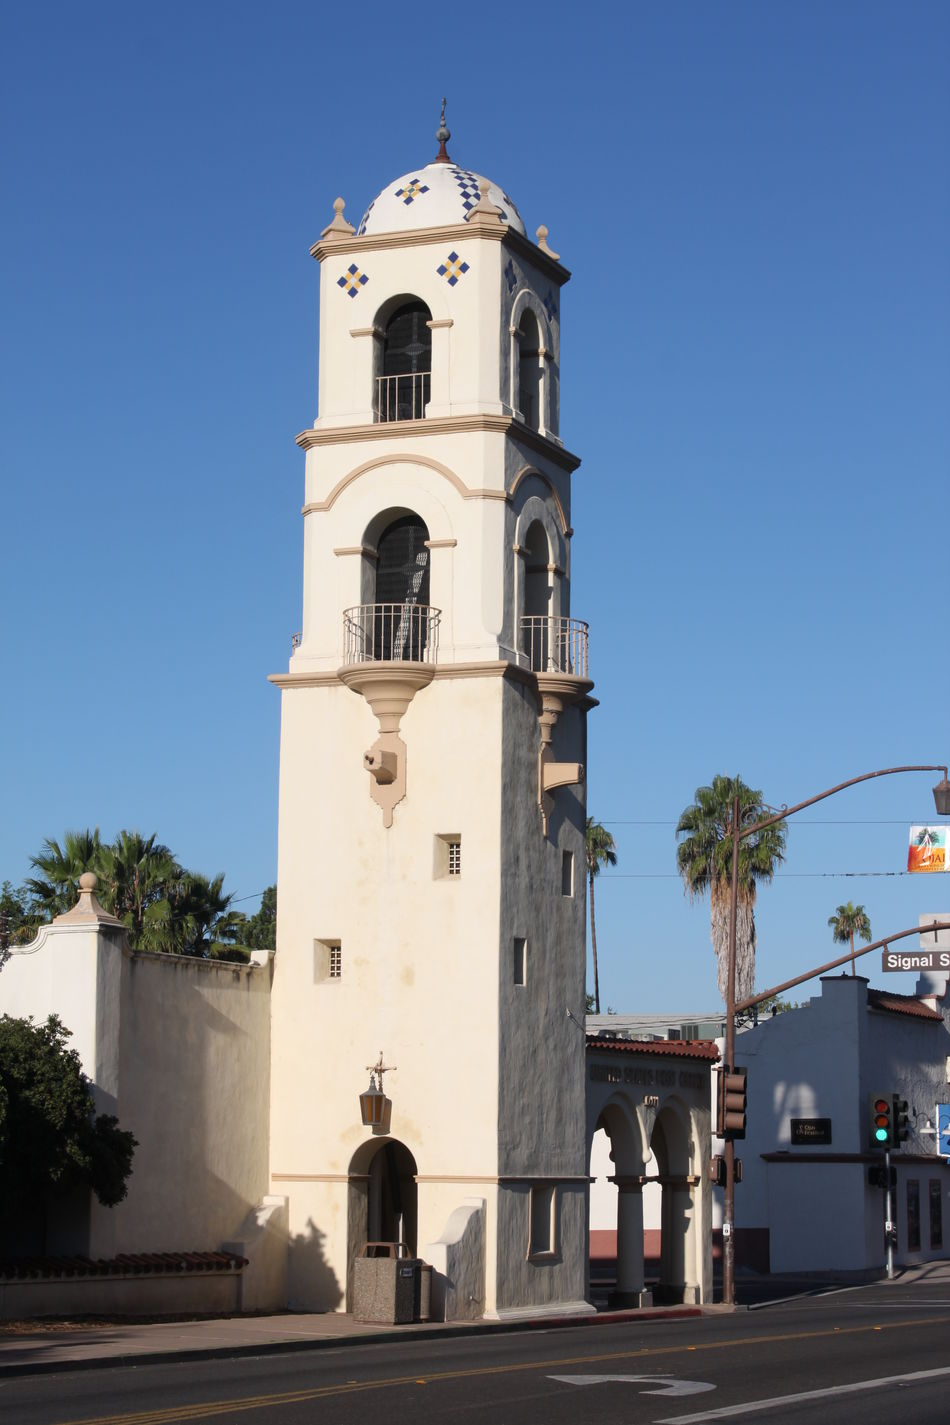 Post Office Tower Ojai Downtown Ojai with the post office tower. Architecture Attraction Building Buildings California City Design Downtown Exterior Famouse Historic Historical History Landmark Ojai Old Outdoors Southern Street Structure Tourism Tourist Tower Traditional White